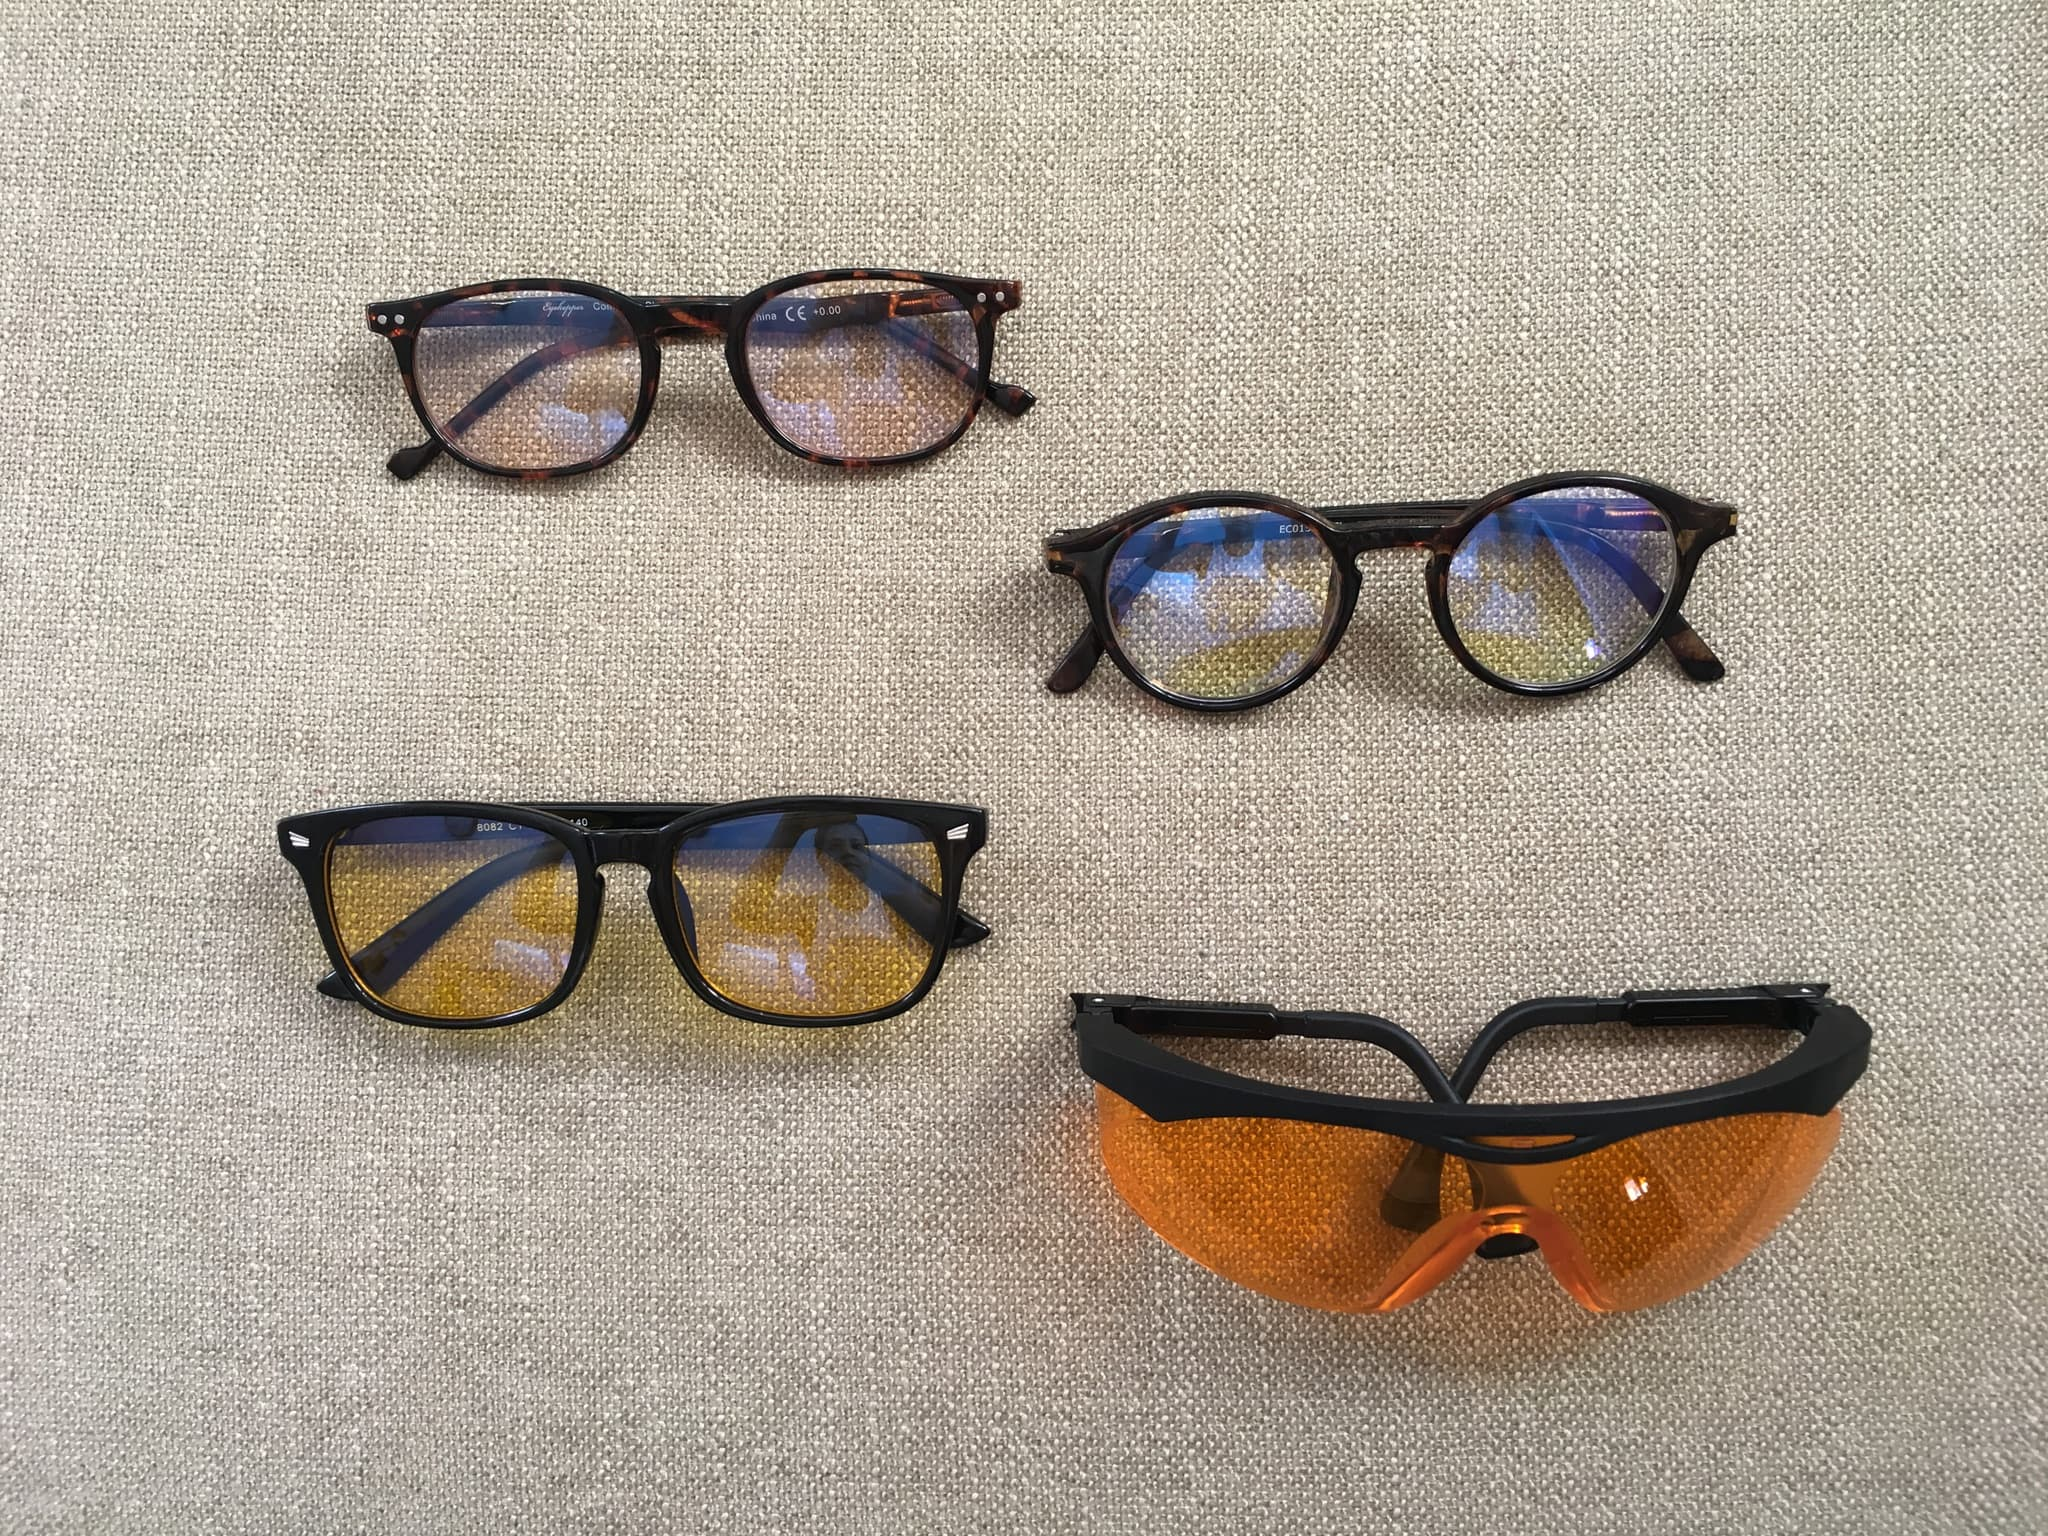 2bbe7c34eee Best Blue Light Blocking Glasses - All Your Options